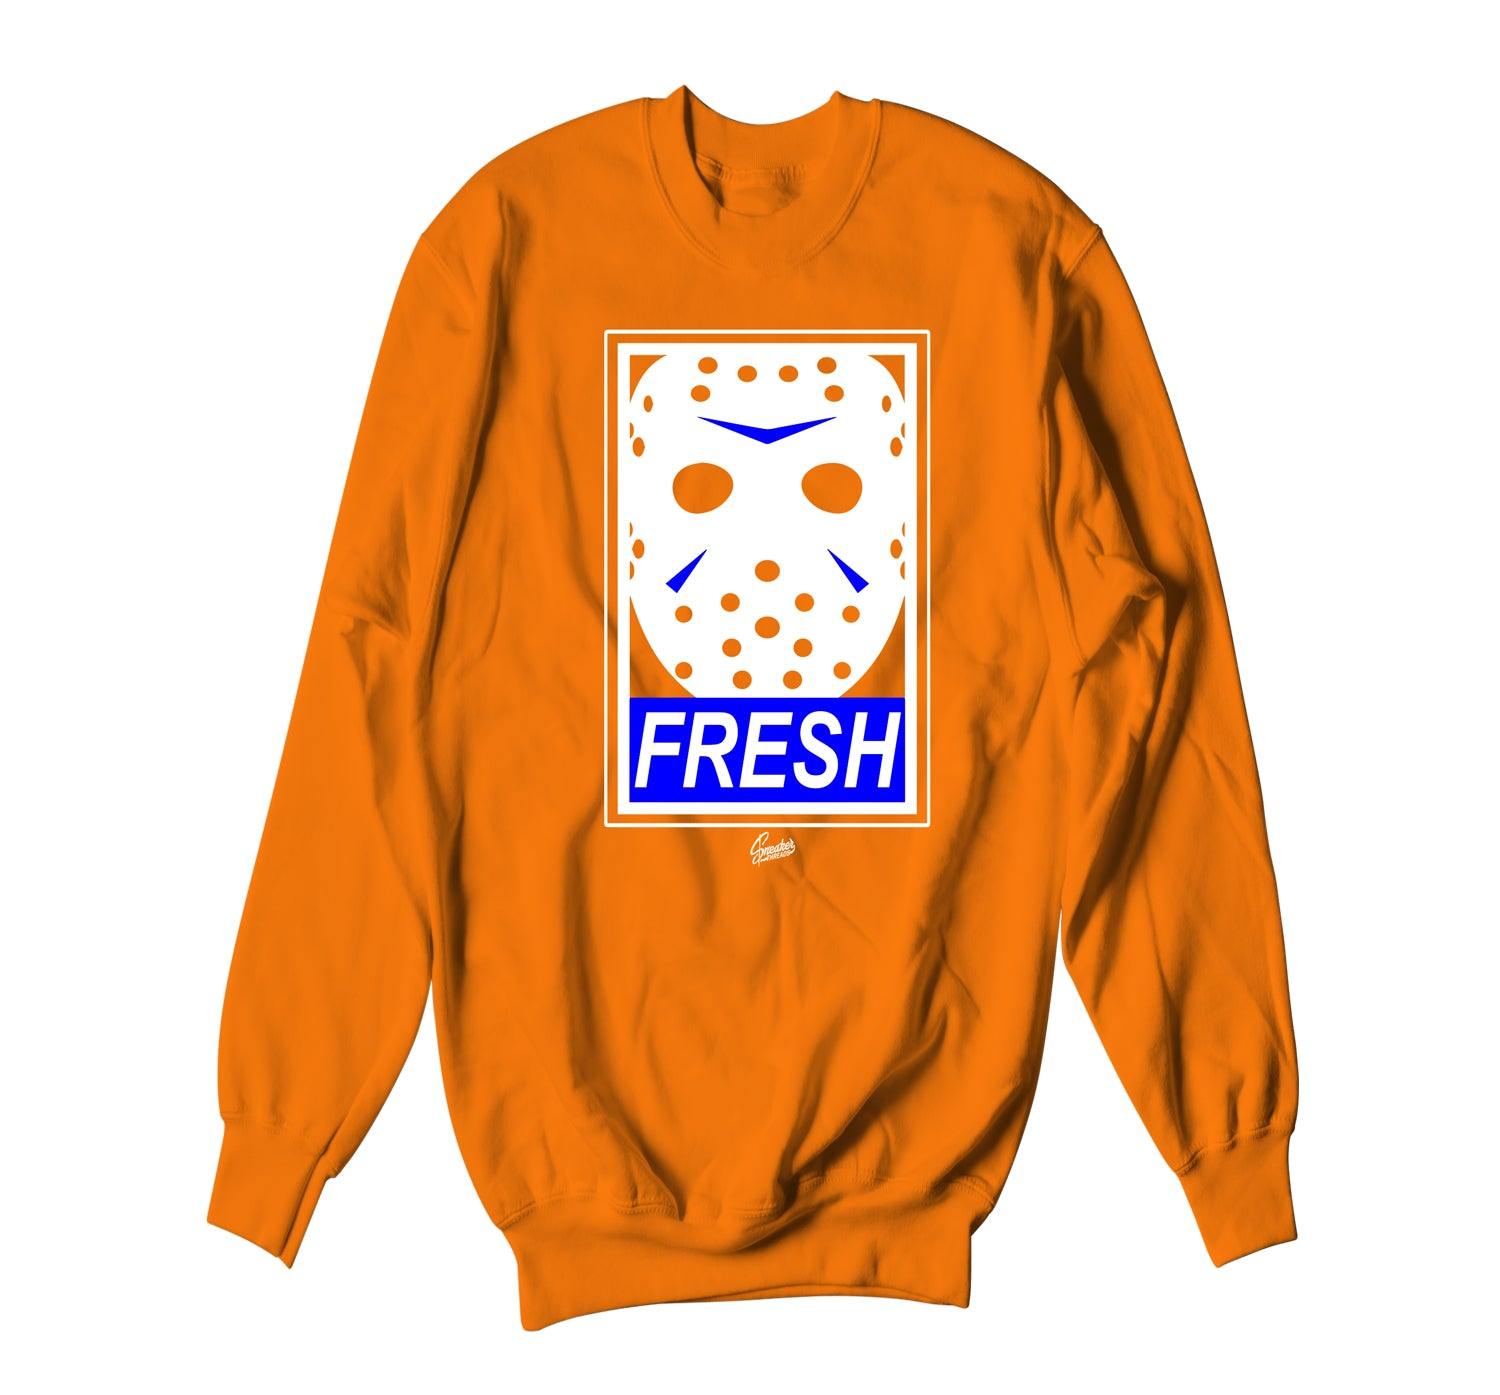 Jordan 3 Knicks Sweater - Fresh To Death - Orange